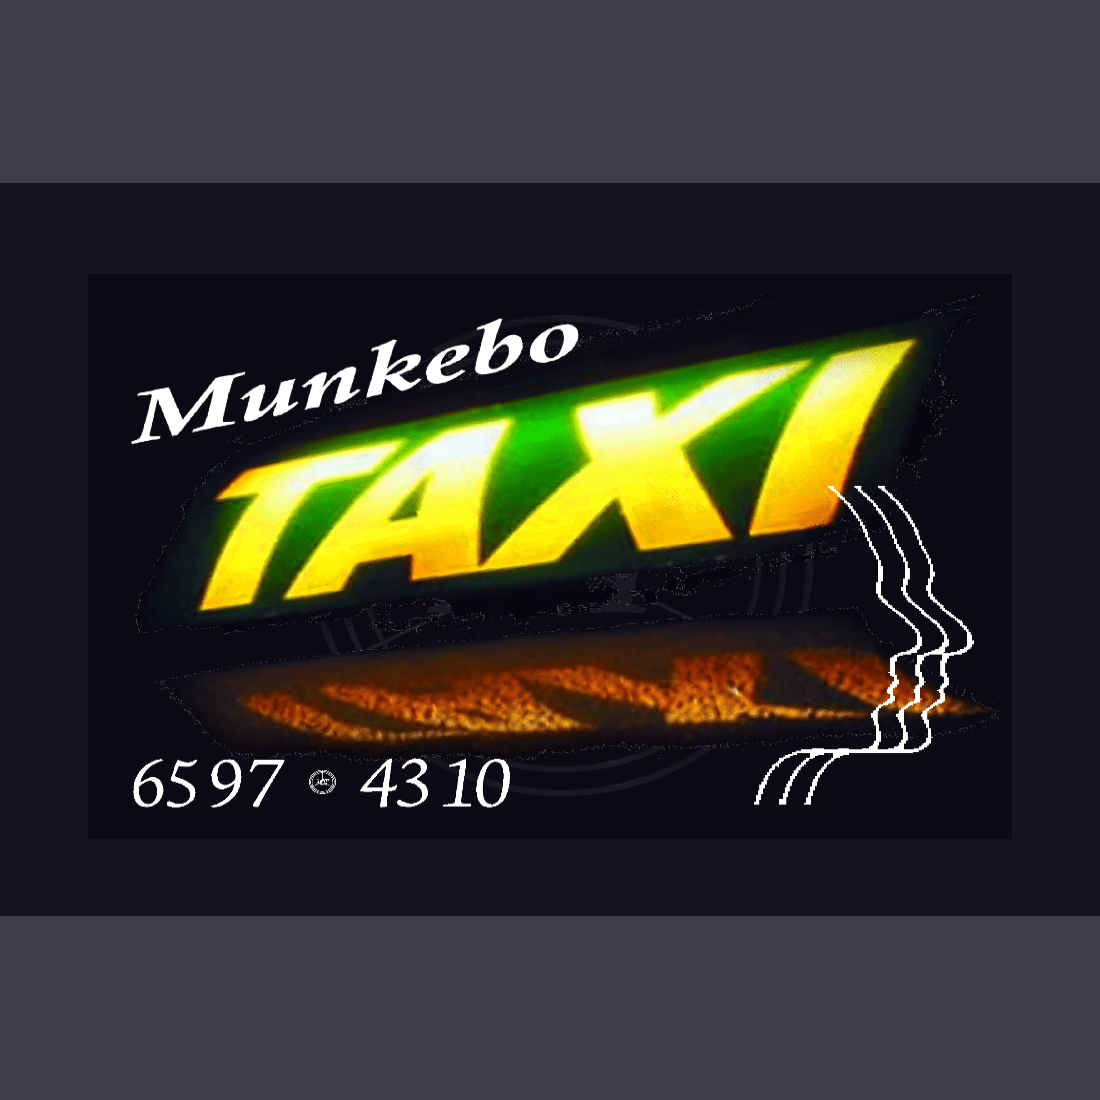 Creation for https://www.munkebotaxi.dk. COVER MUNKEBO TAXI DRIVERS FACEBOOK BY KANOBI® © Drivers card Munkebo Taxi cover Cover Munkebo Taxi drivers facebook by Kanobi®